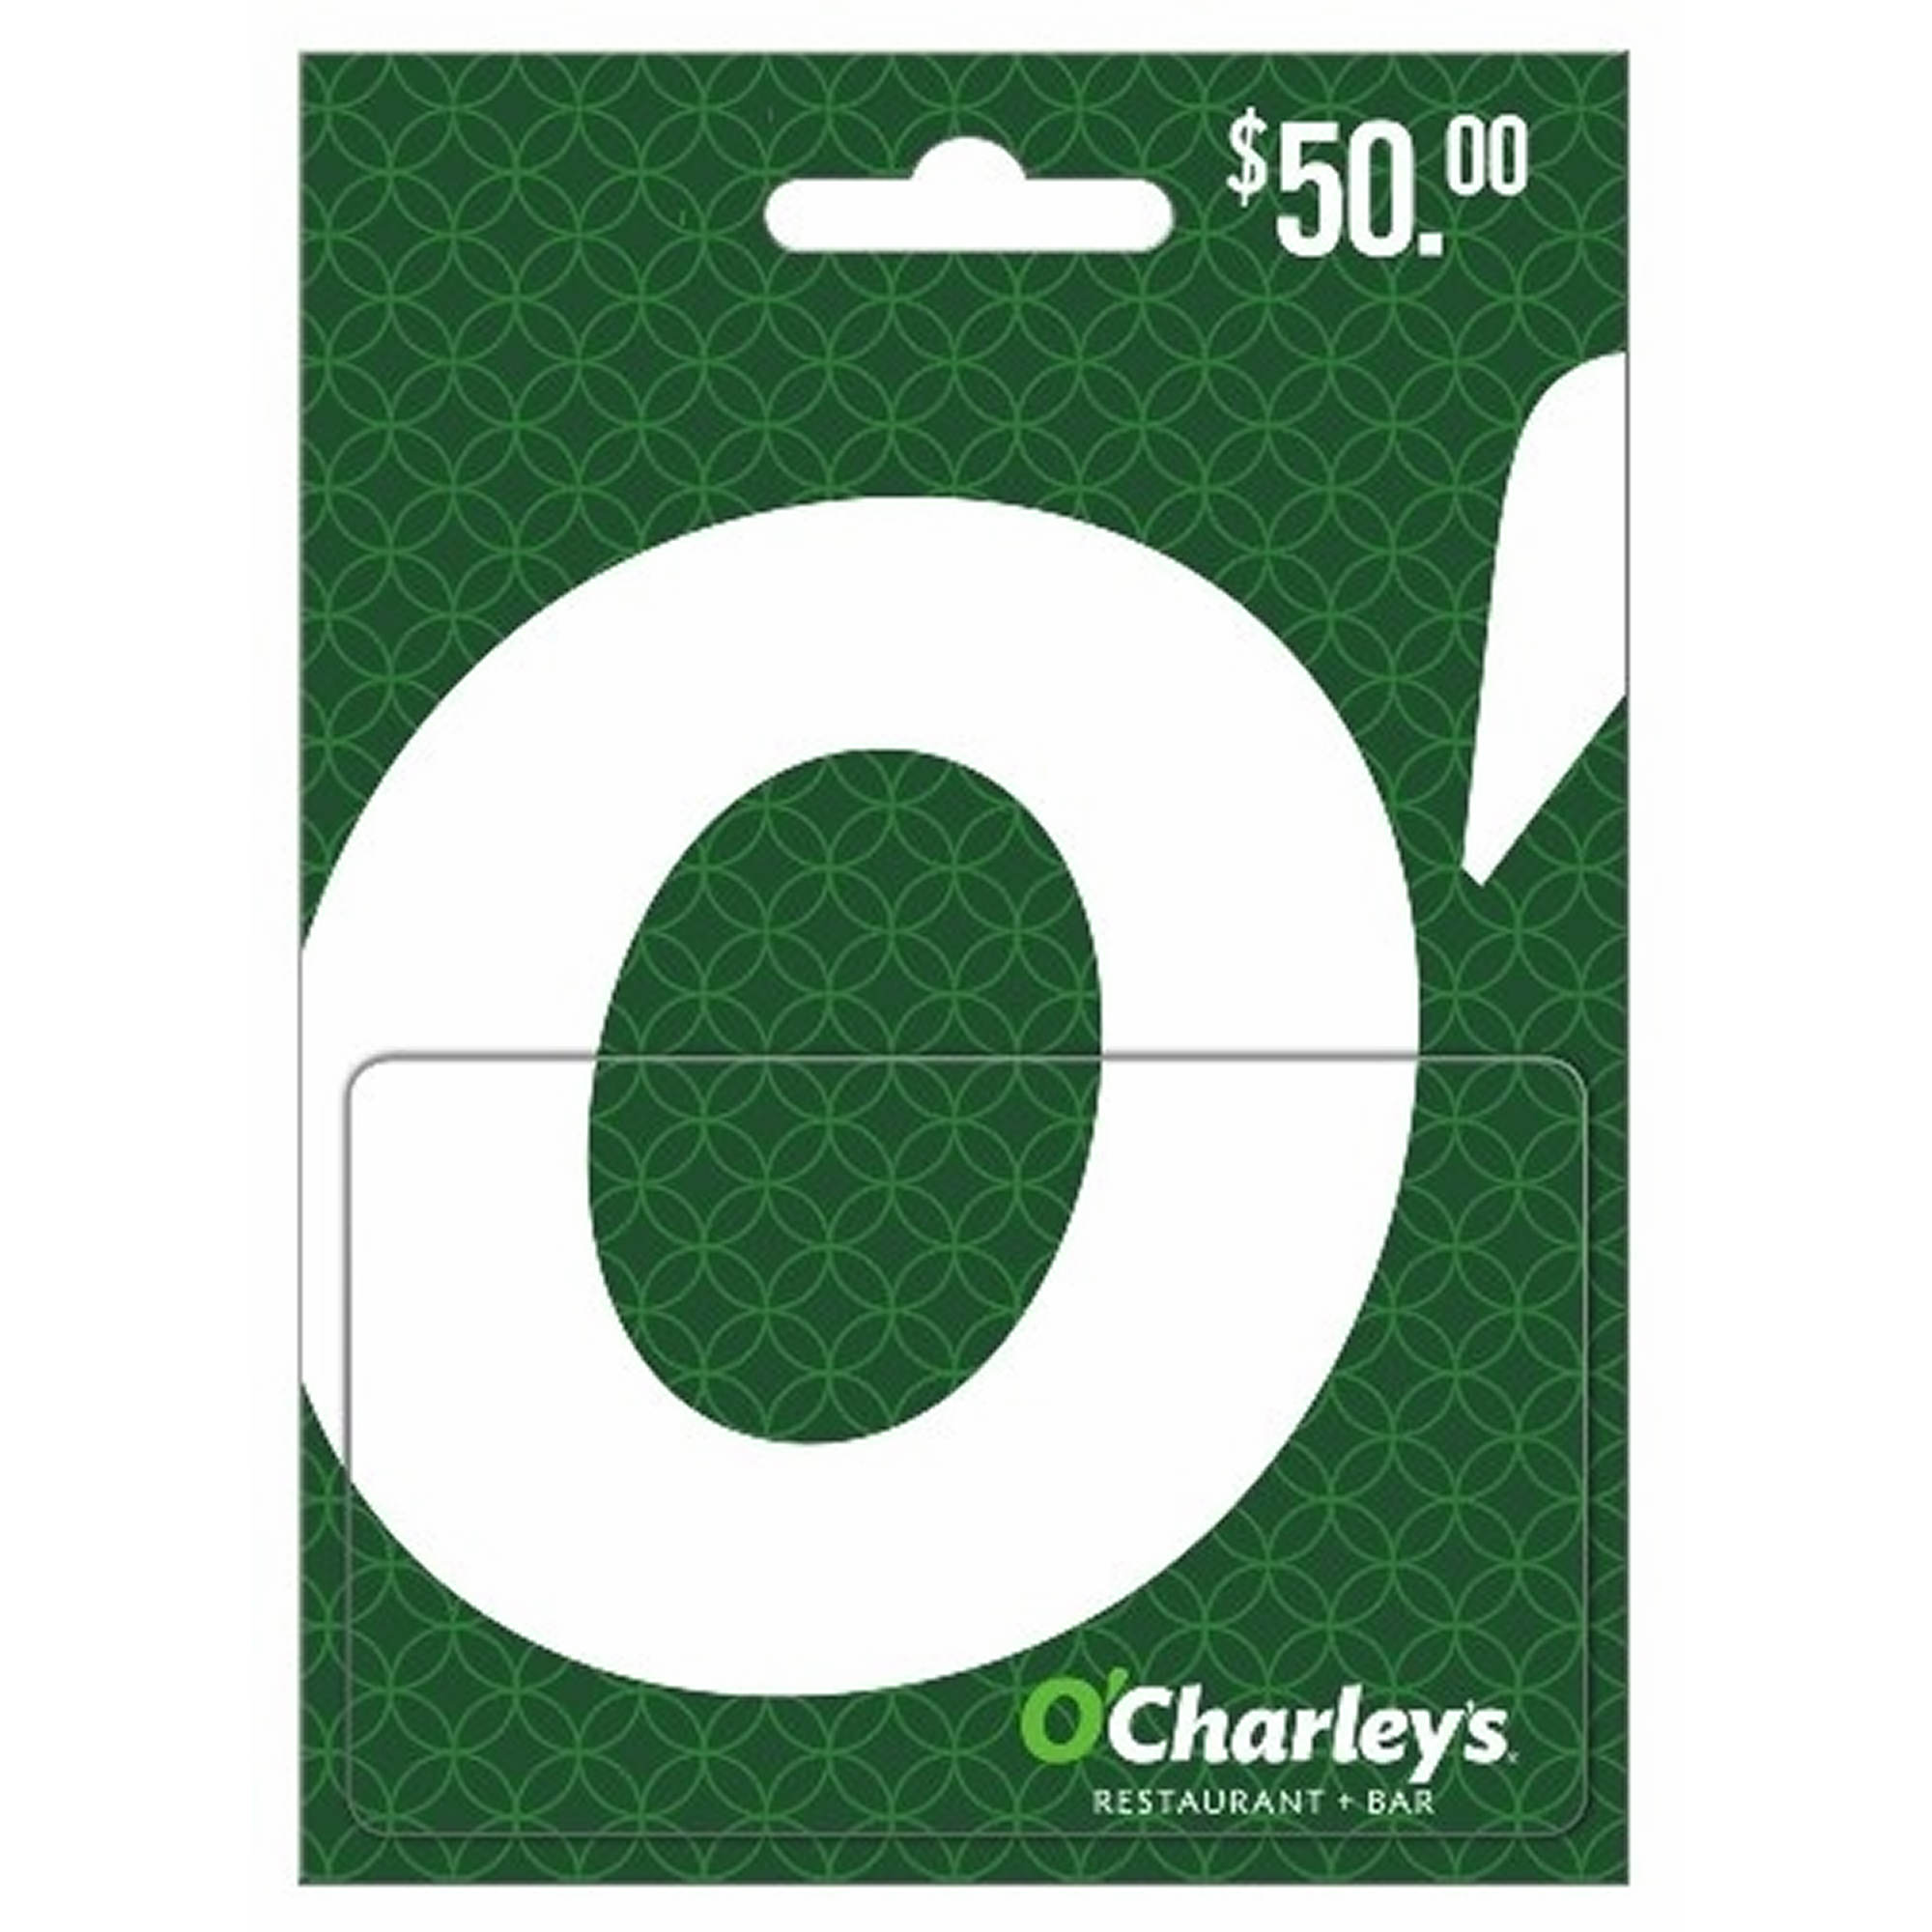 ocharleys gift card balance photo - 1